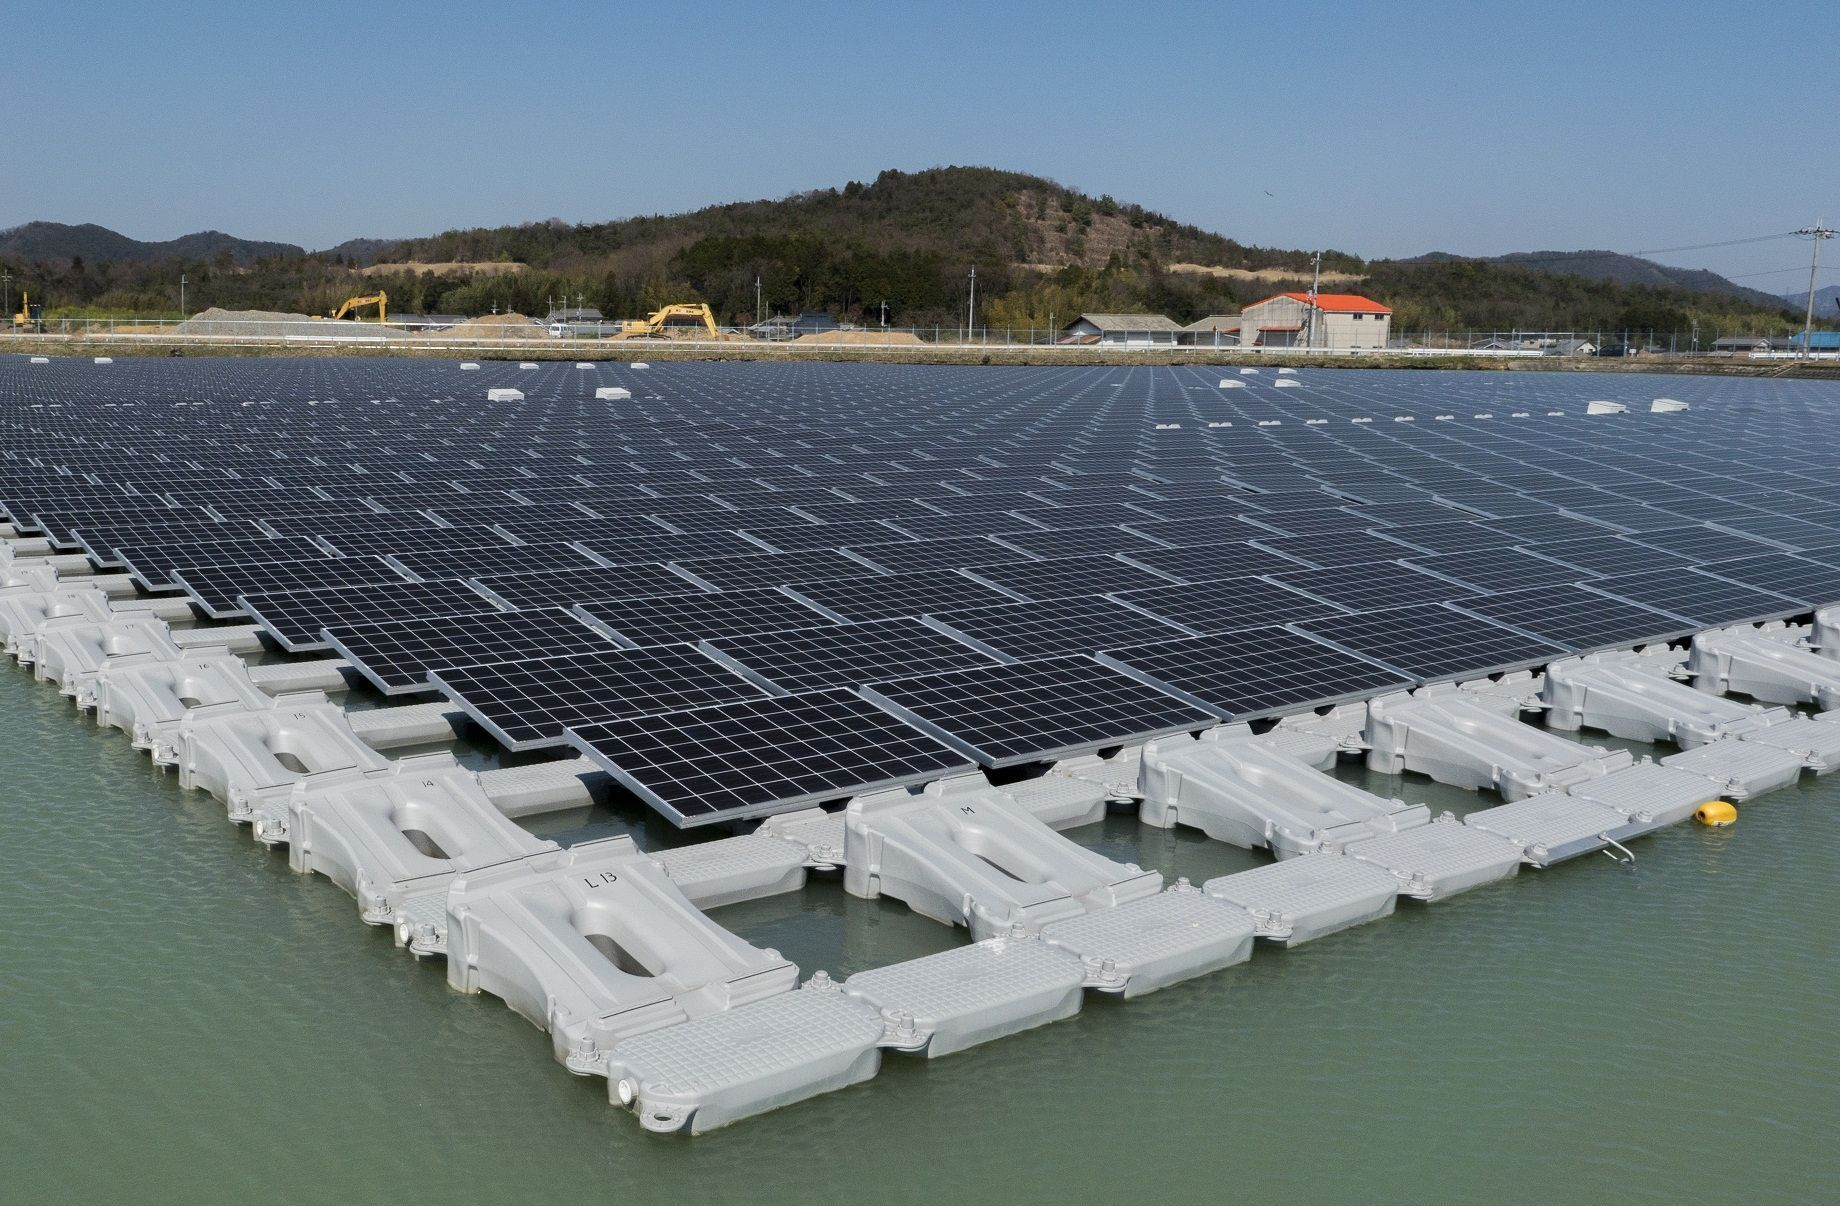 28 Thousand MW Potential, The Price of Floating PLTS Electricity can be US$ 3.7 Cents per kWh